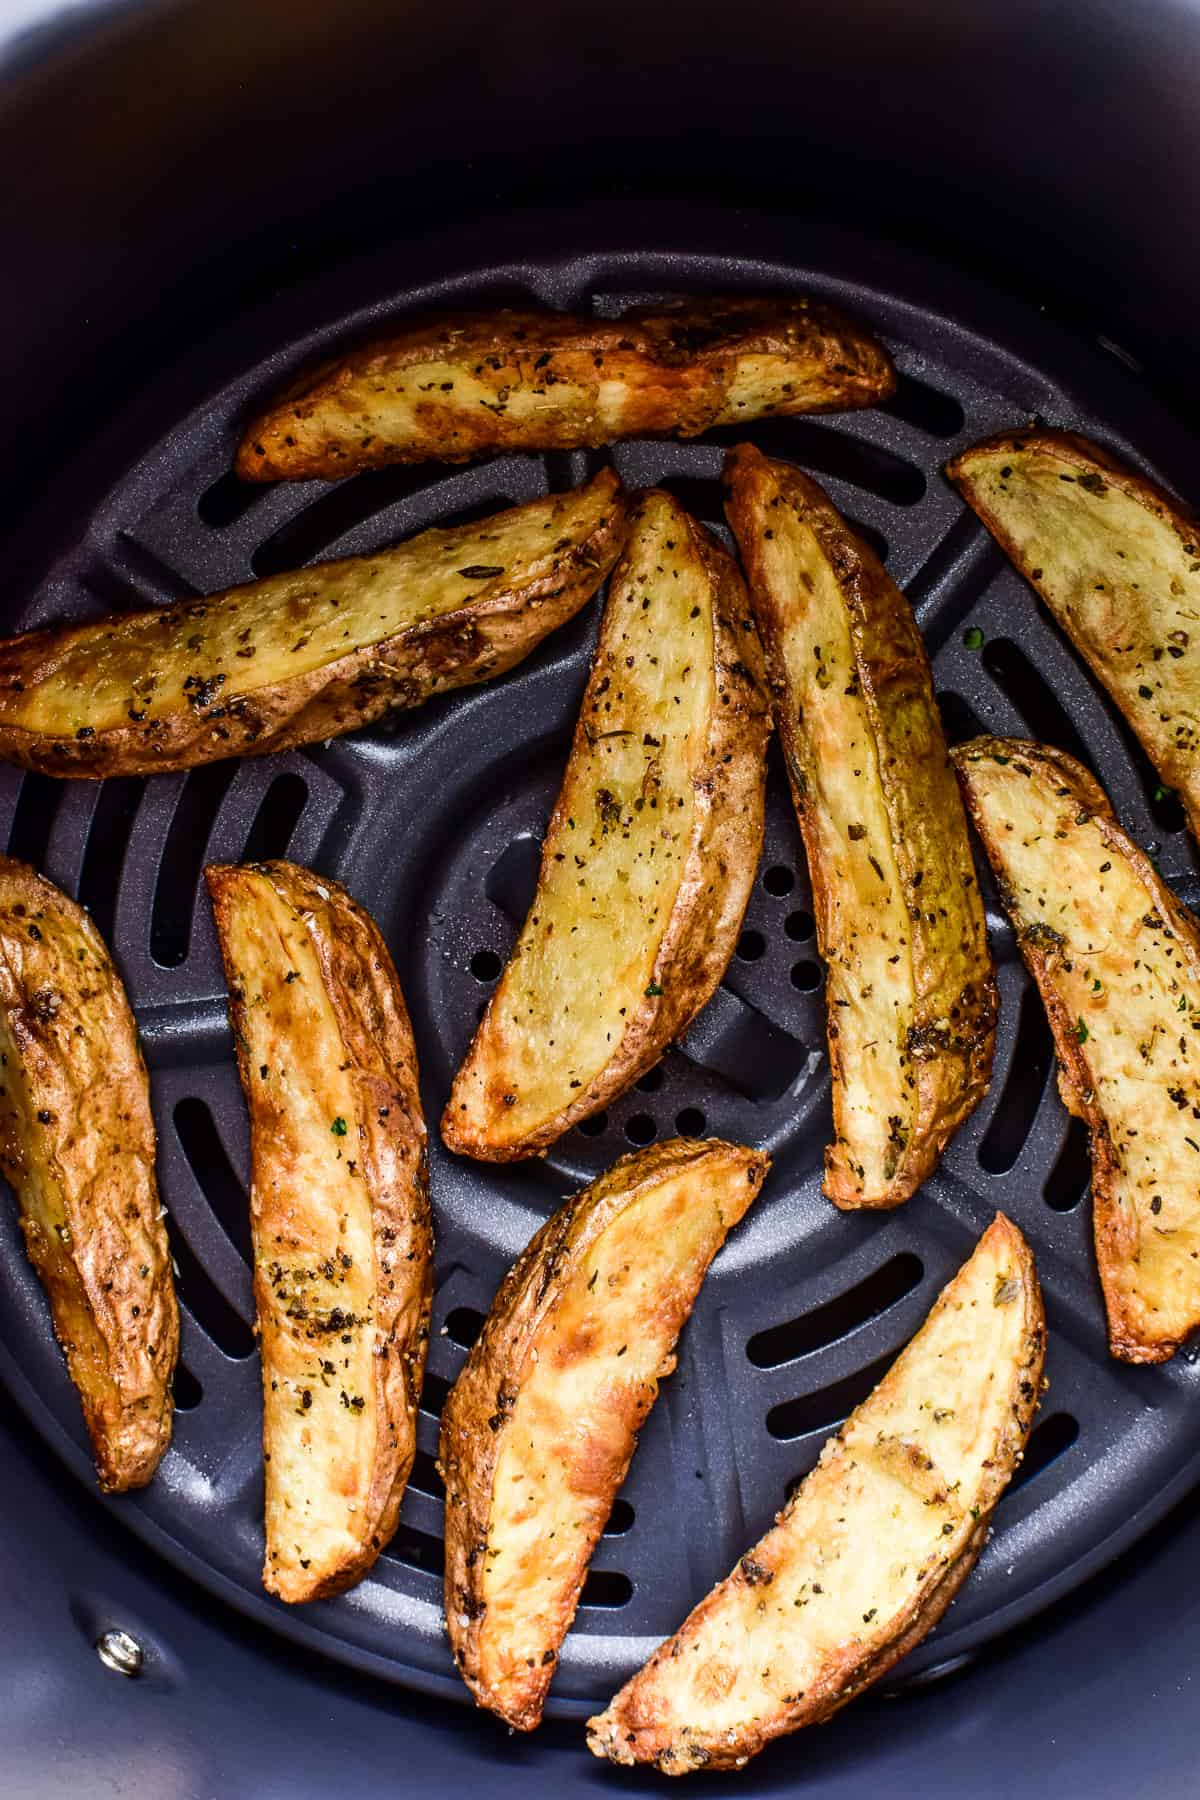 Potato Wedges in an air fryer basket